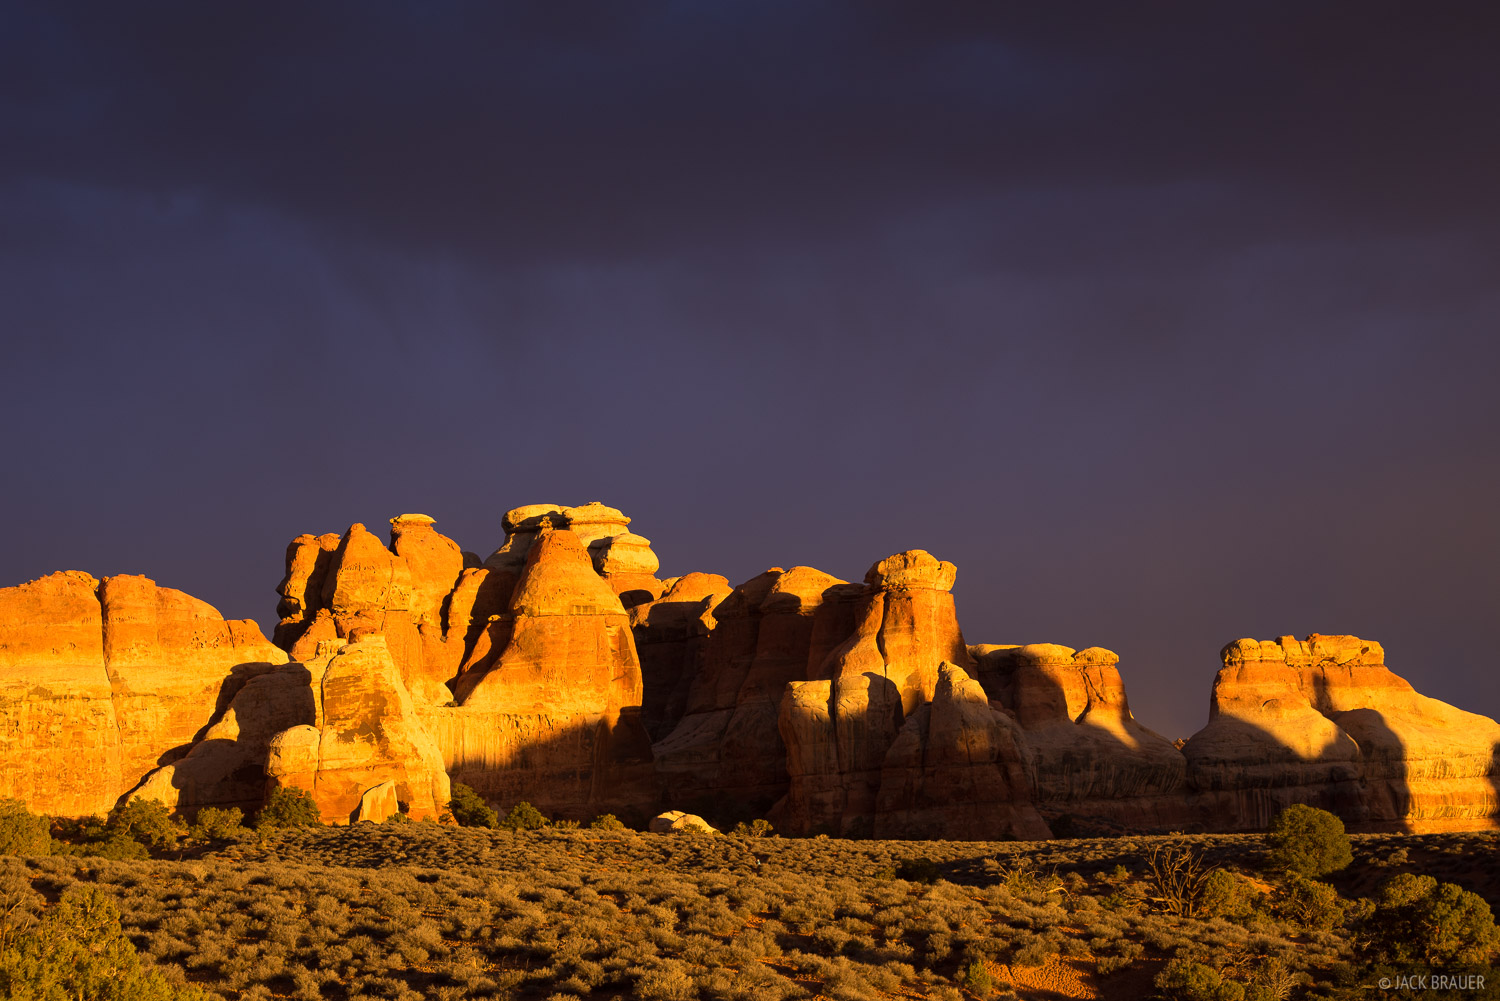 Canyonlands National Park, Needles District, Utah, Chesler Park, photo